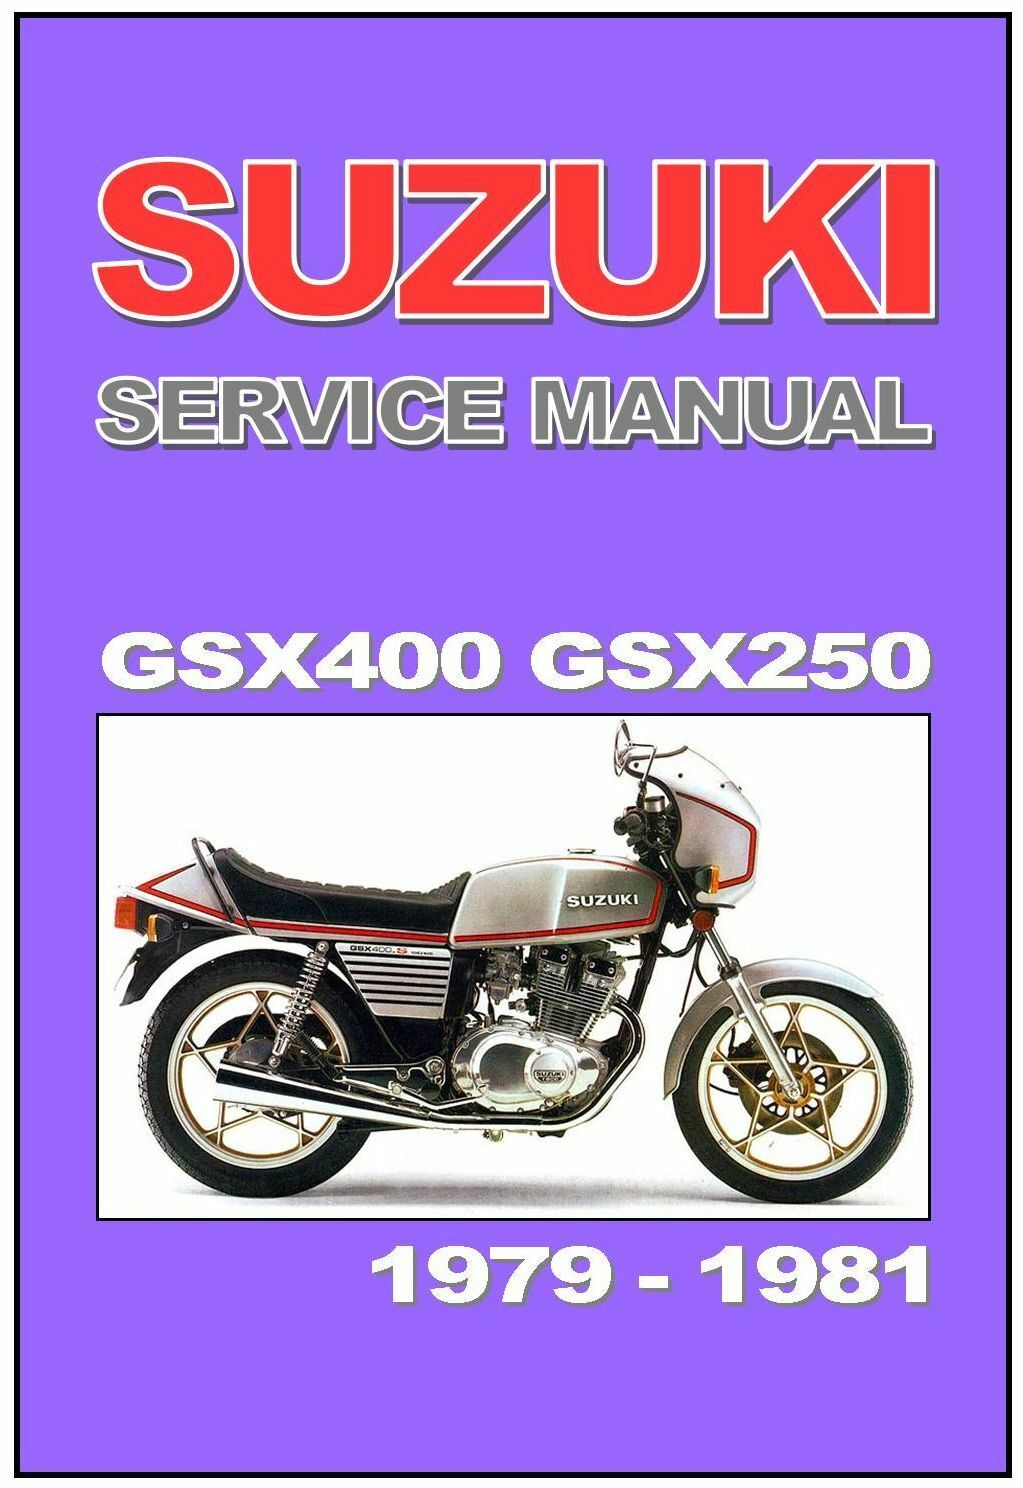 SUZUKI Workshop Manual GSX400 GSX250 1979 1980 1981 Maintenance Service &  Repair 1 of 1Only 1 available ...